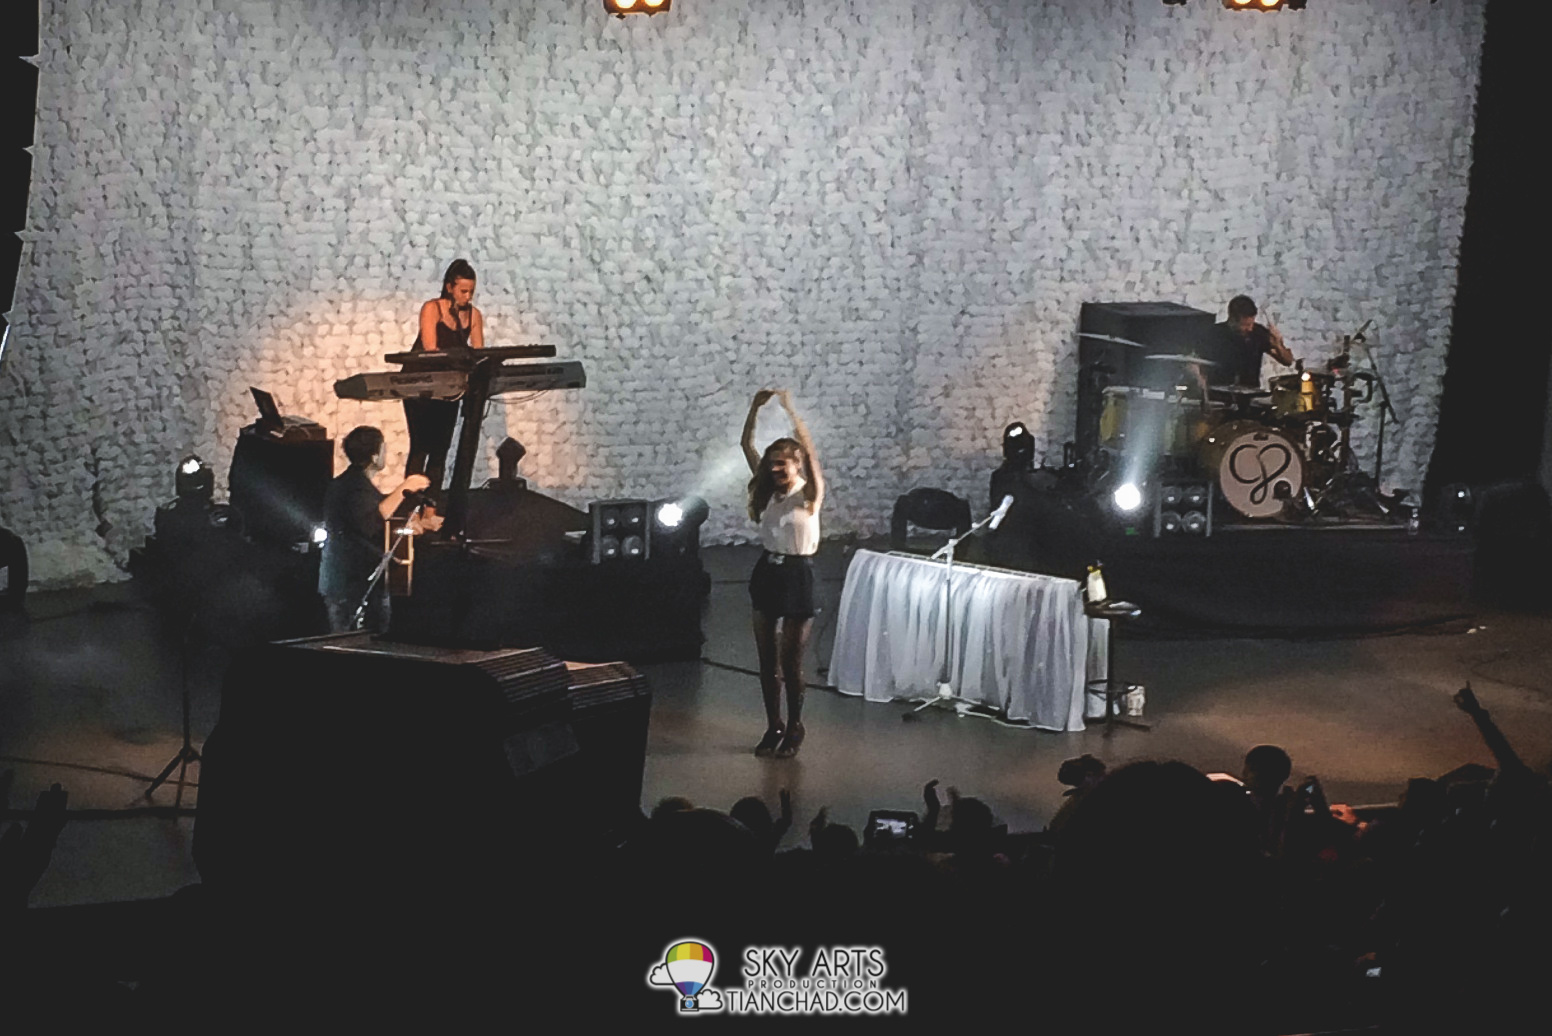 Christina Perri Live in KL 2015 - Actual Concert Night @ KL Live Ballerina Christina